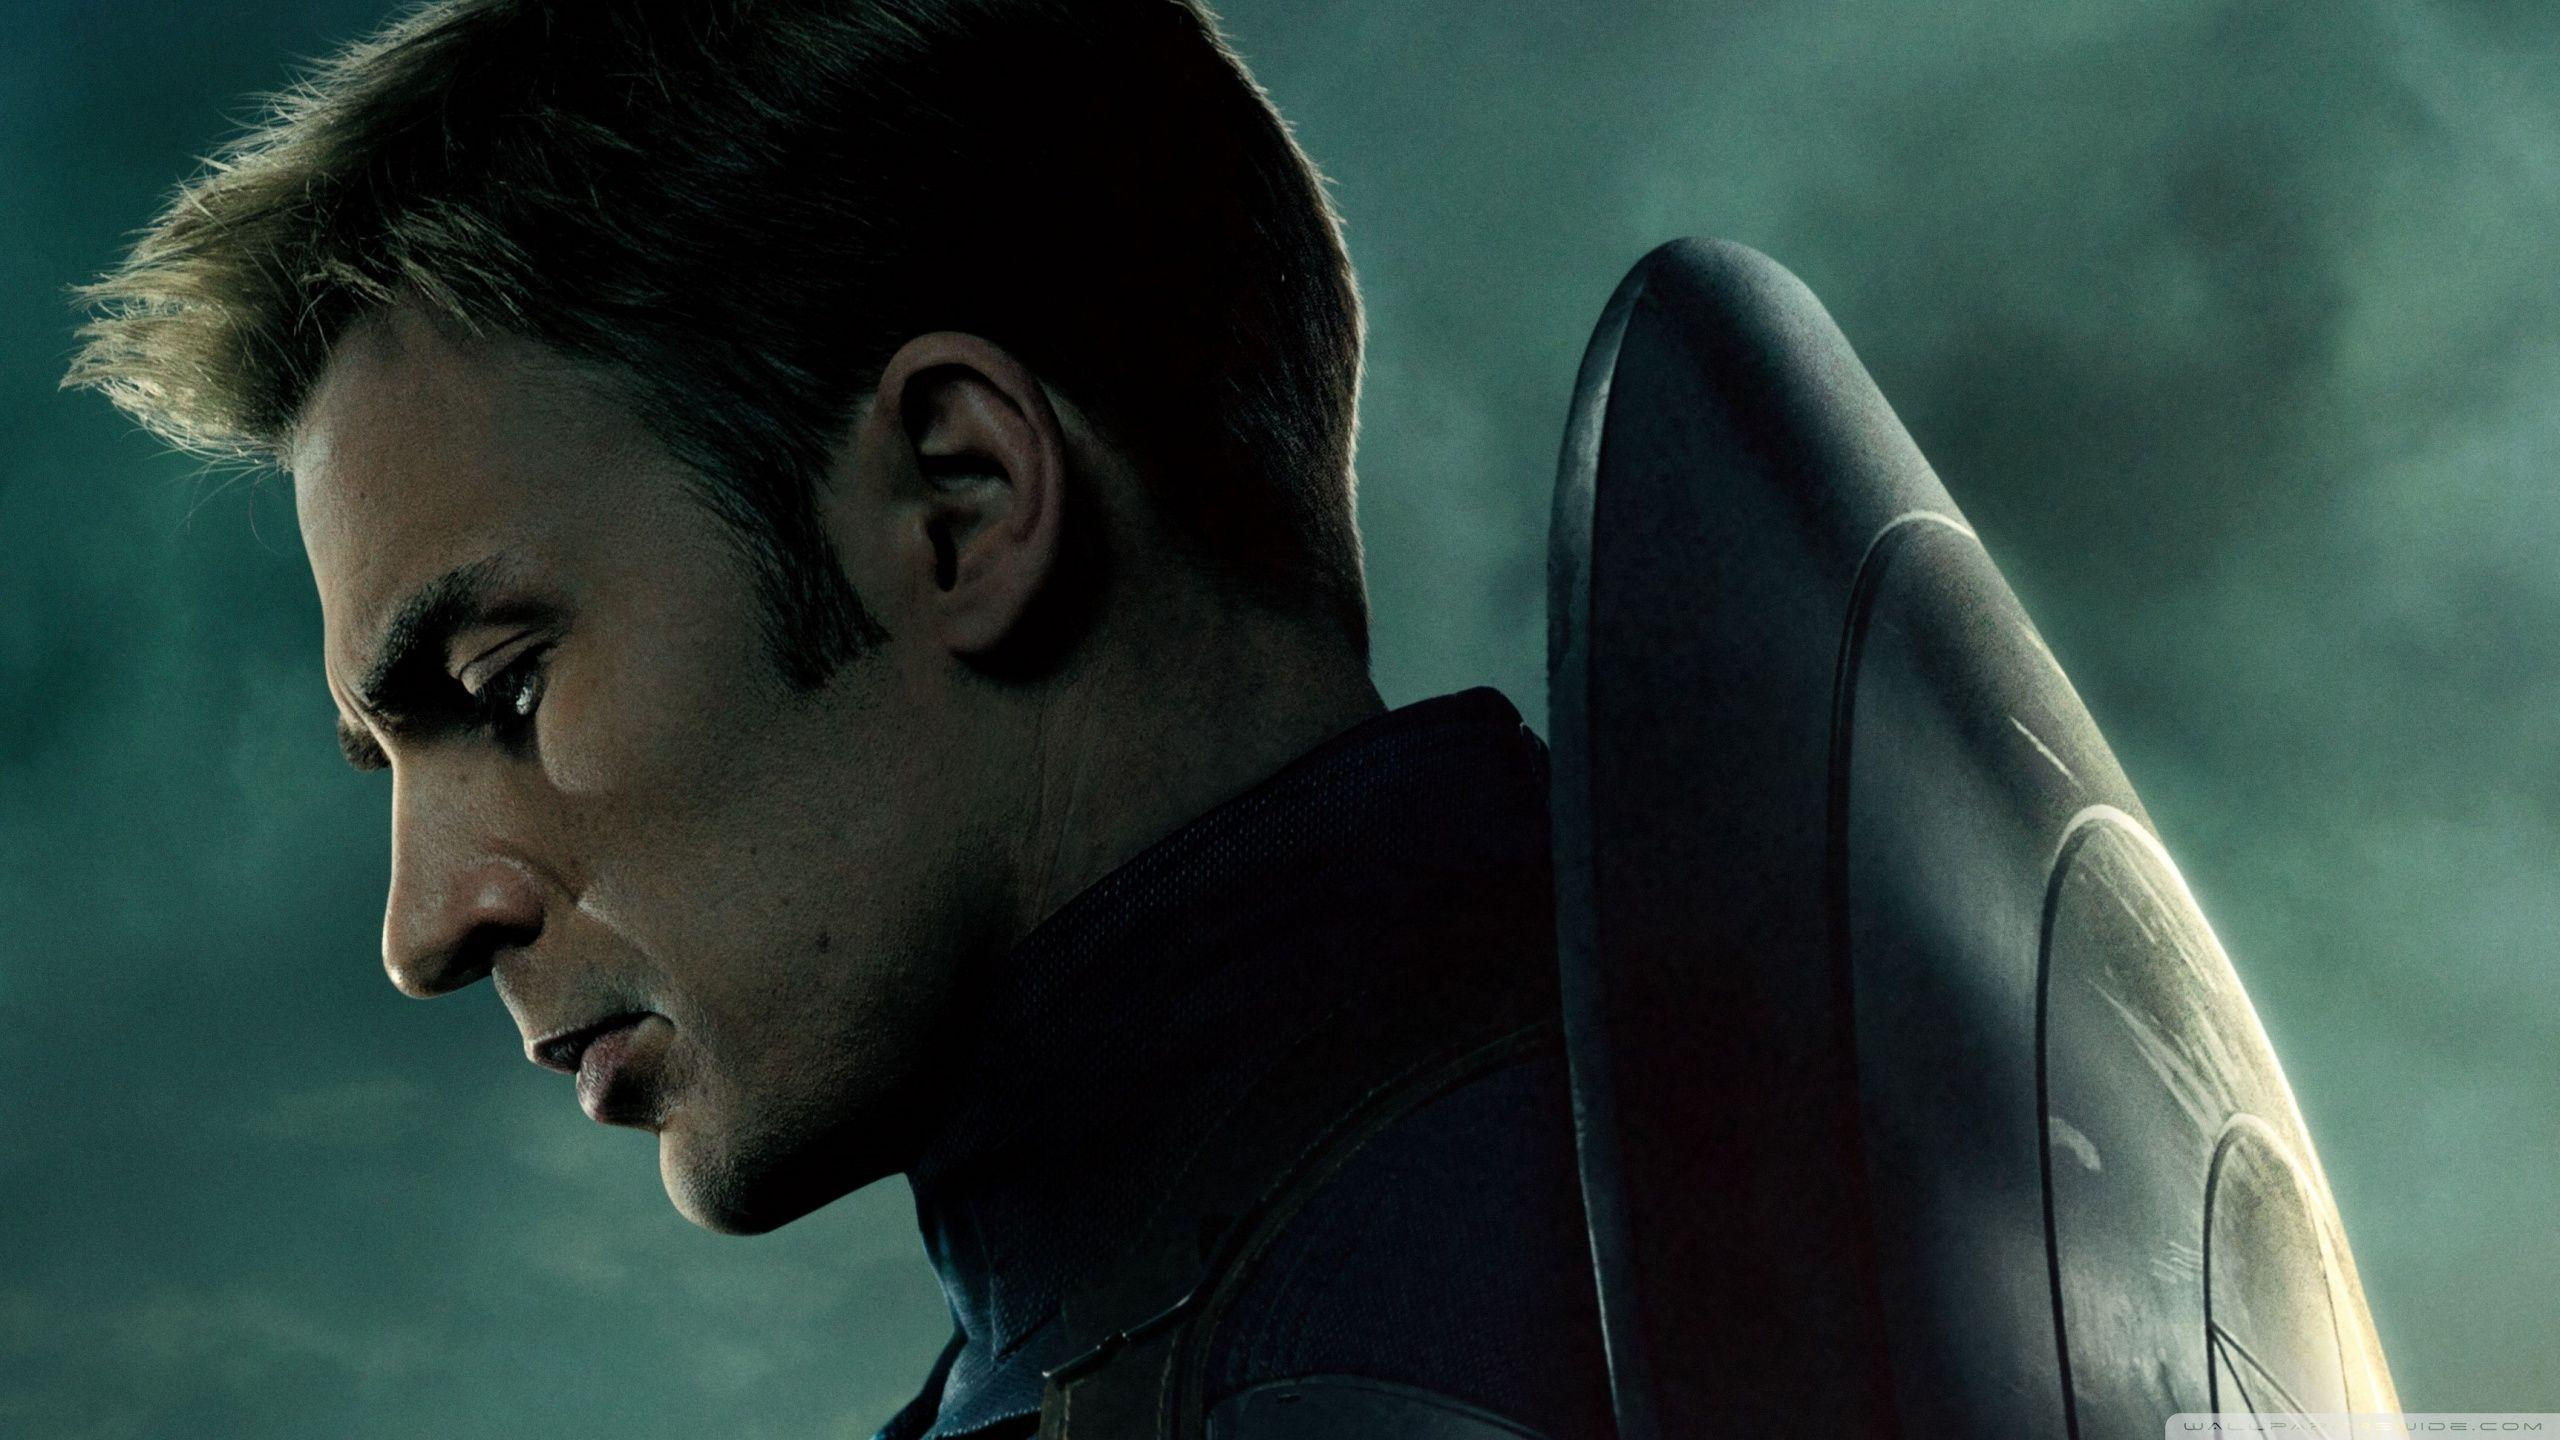 CAPTAIN AMERICA THE WINTER SOLDIER Wallpapers and Desktop